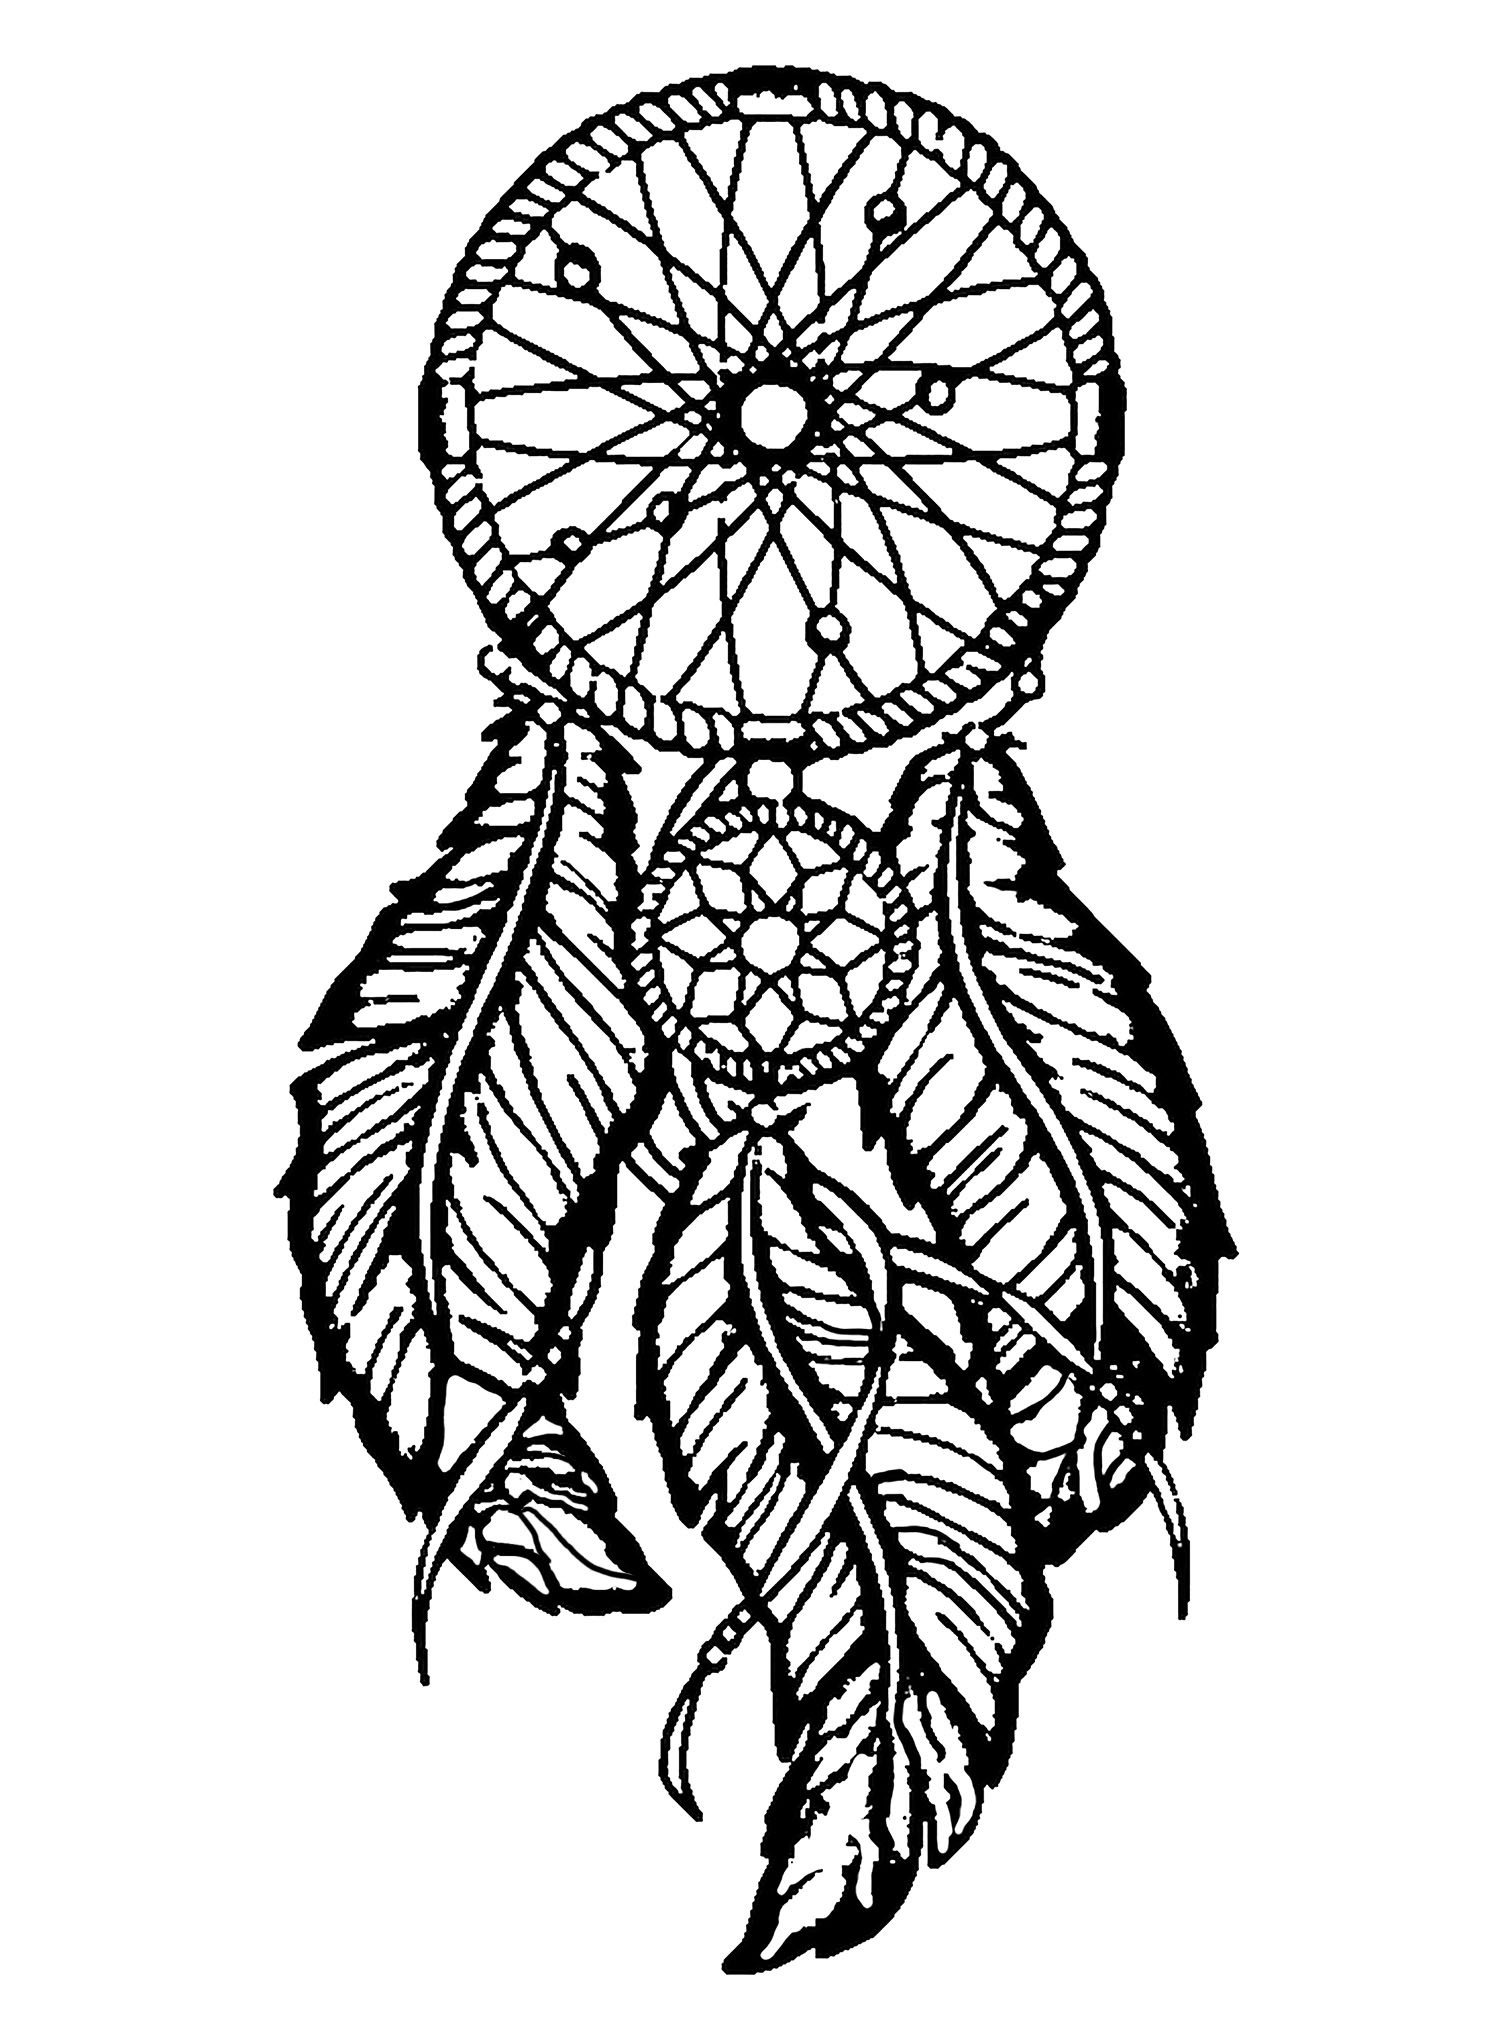 coloring pages for adults dream catchers dreamcatcher to print 1 zen and anti stress coloring dream catchers pages for adults coloring